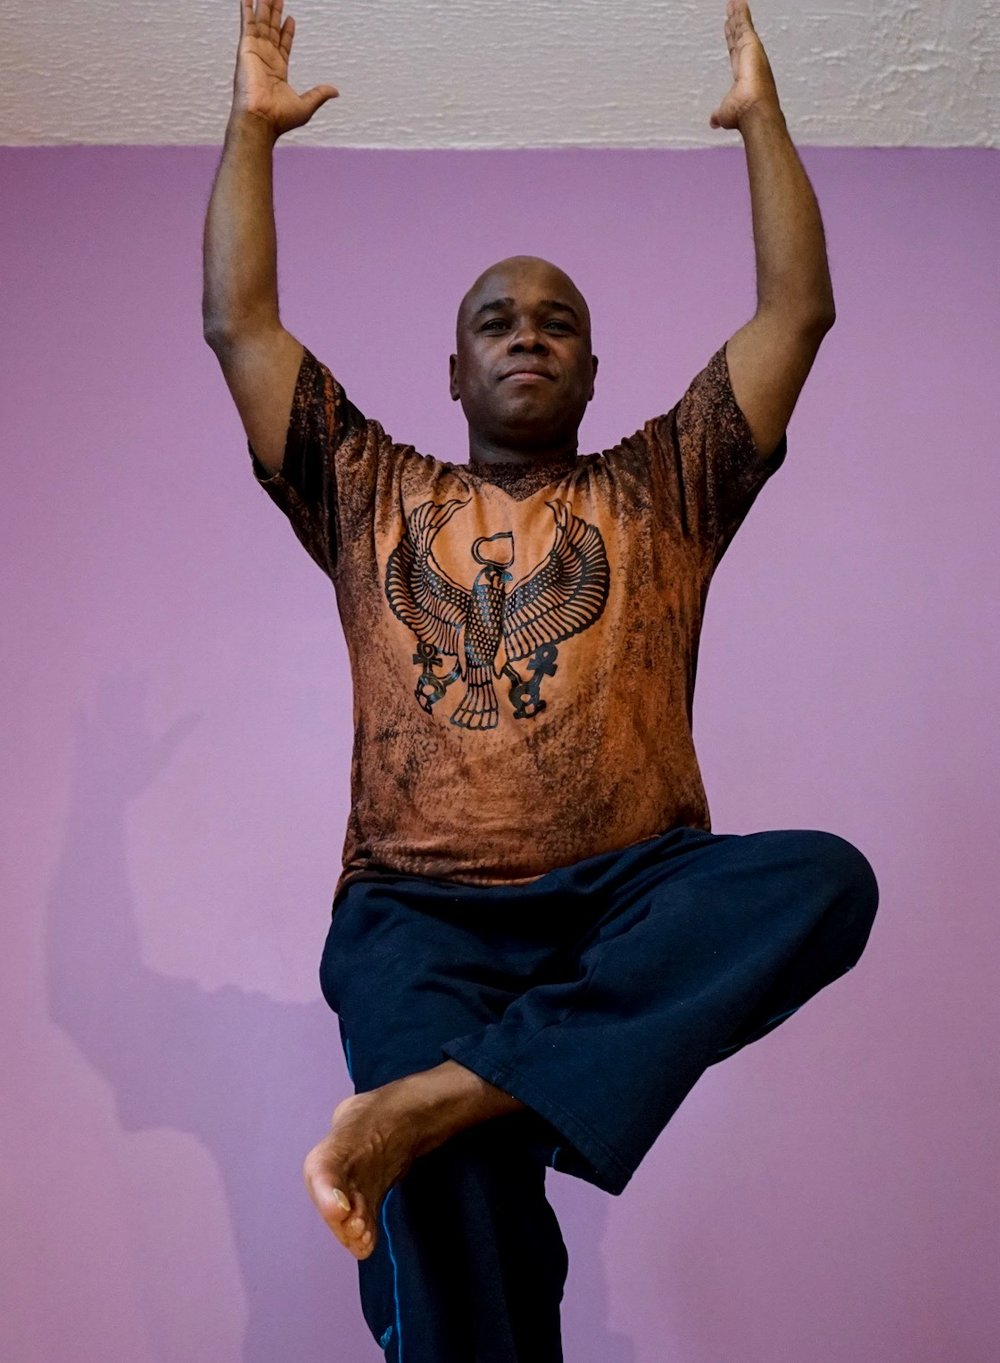 Perry Daniels Perry began his yoga practice in 2007. Originally just experimenting, it didn't take him long to identify the spiritual, mental and physical benefits associated with a regular practice. Yoga has now become a part of his routine and, has aided him in becoming an energetically calm yogi. Perry has an extensive coaching background, which enables him to challenge students to enhance their practice to new levels. Simultaneously, his yoga practice has shown him that it is perfectly okay, to be where you currently are. Some classes will have high energy and high impact, others will be subdued and very laid back. The one constant is that they all will flow.